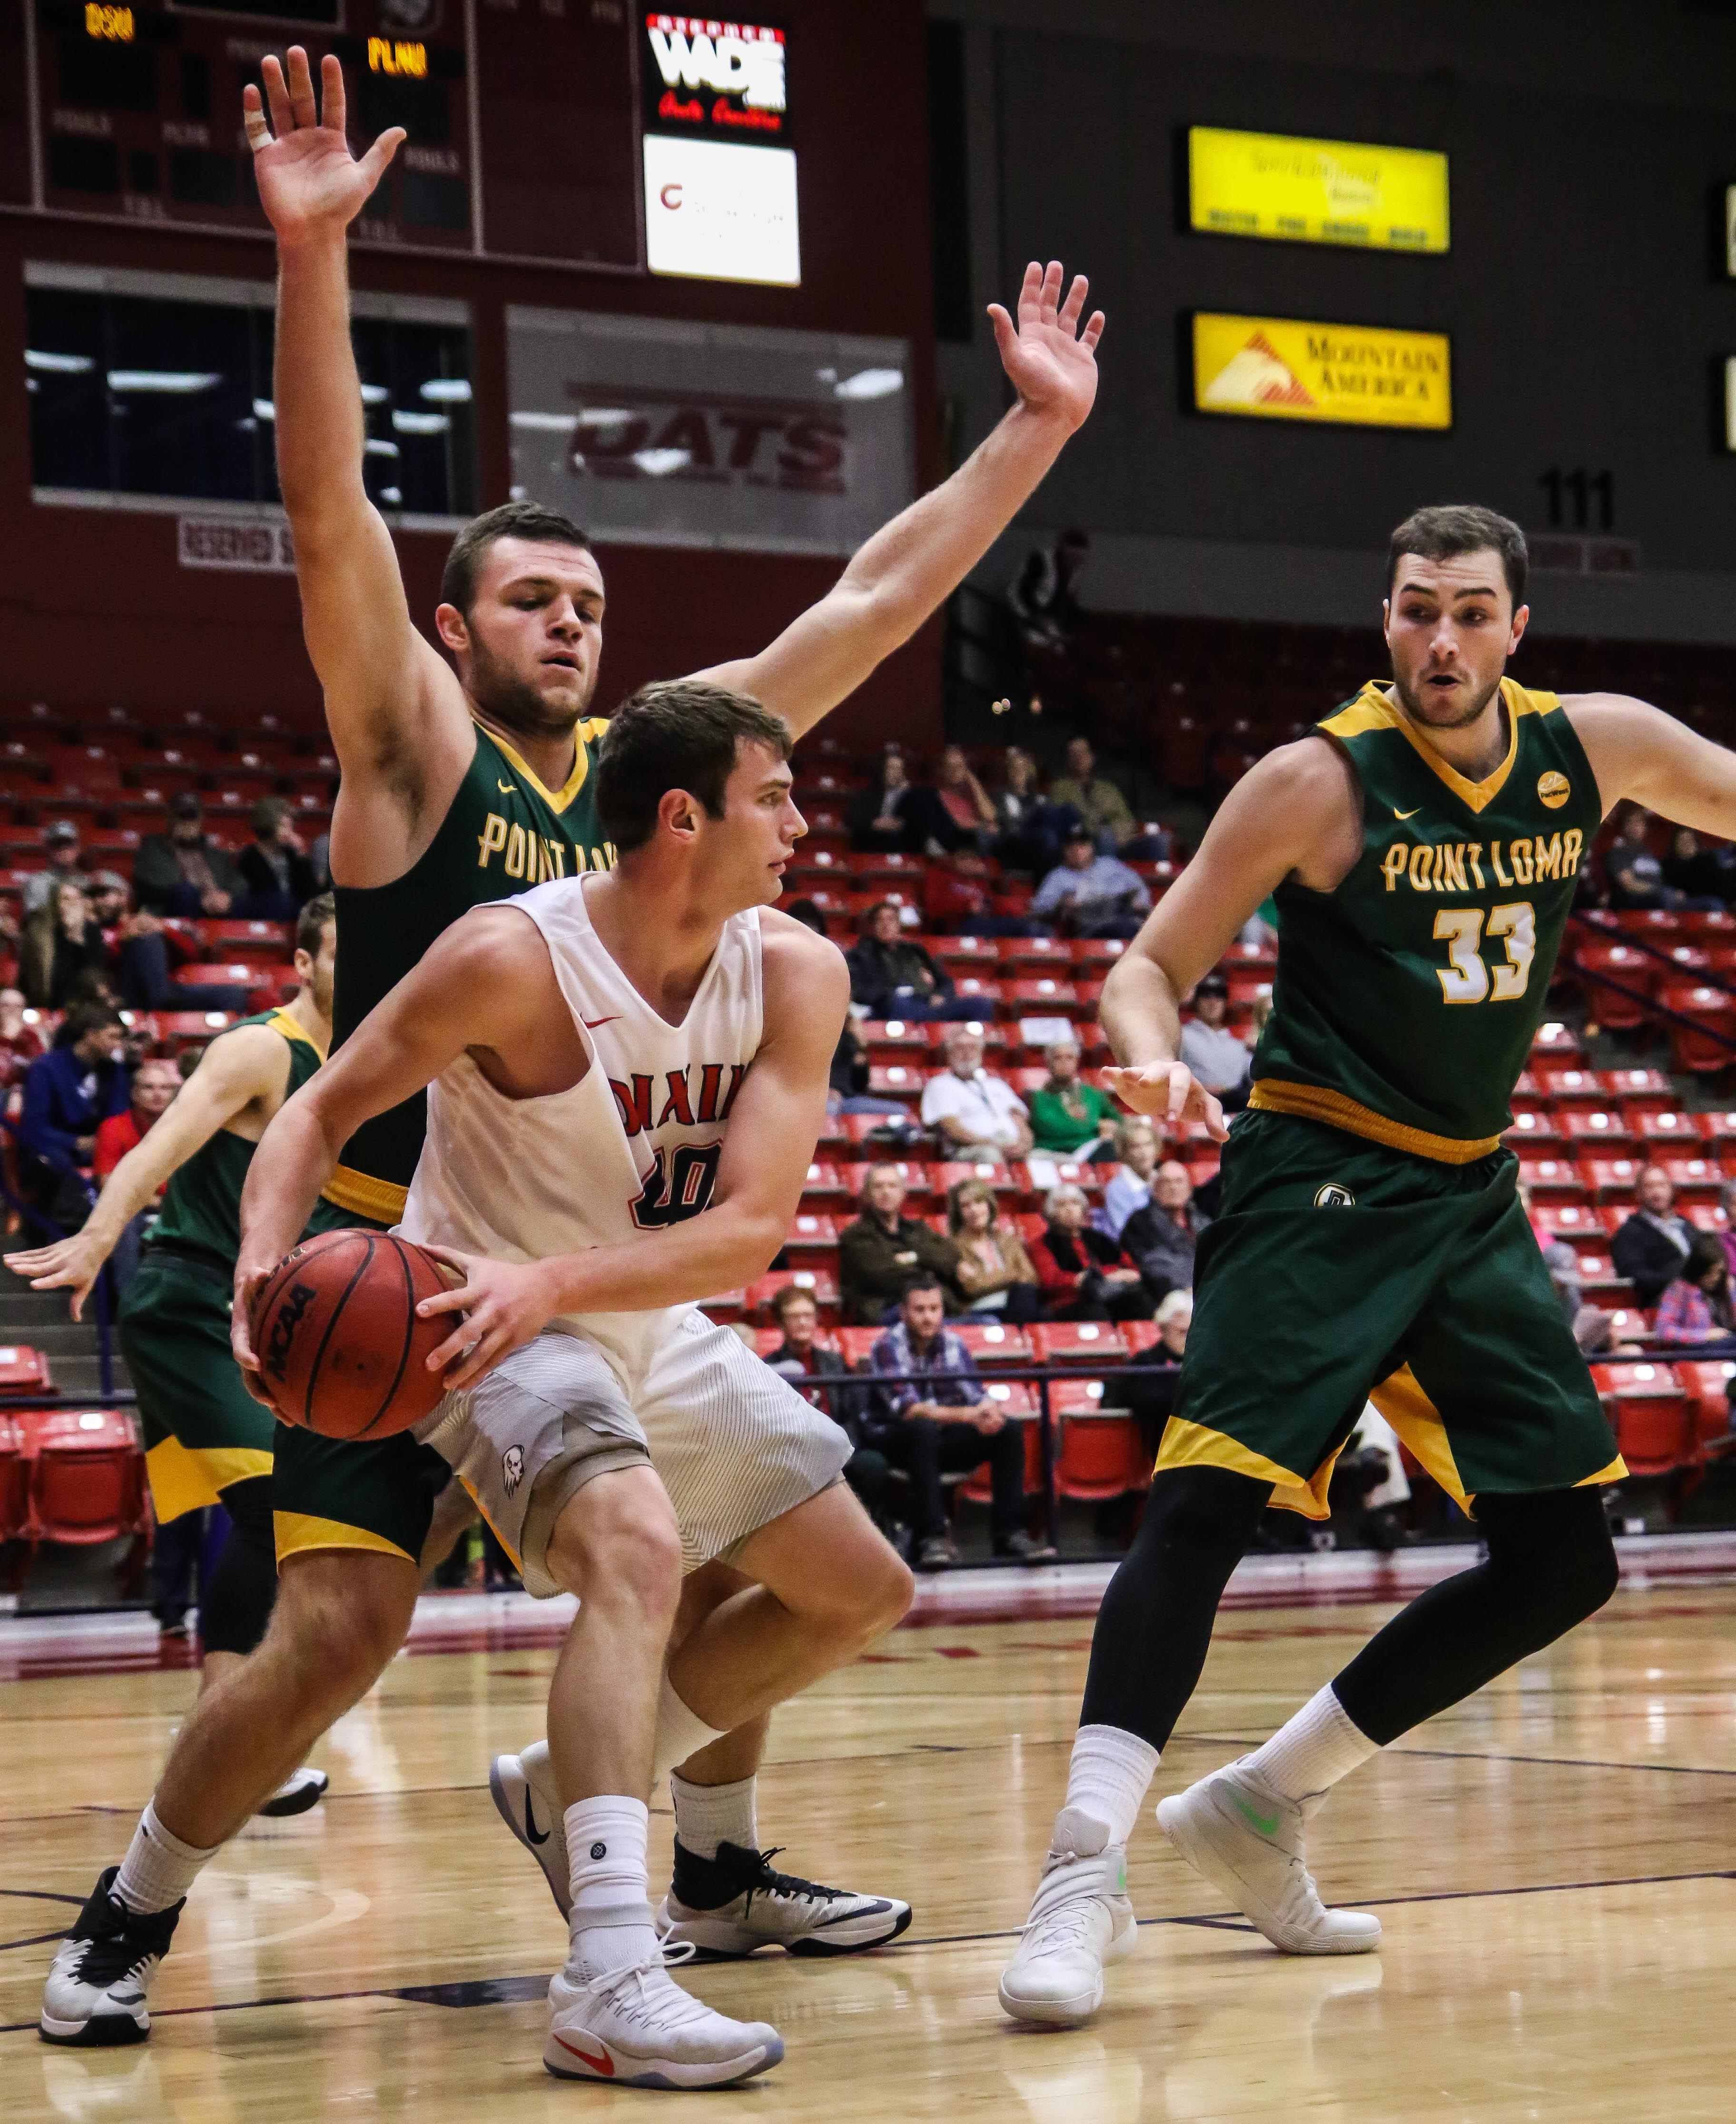 Dixie State's Josh Fuller (40), Dixie State University vs Point Loma Nazarene  University, Men's Basketball, St. George, Utah, Dec. 19, 2016, | Photo by Kevin Luthy, St. George News